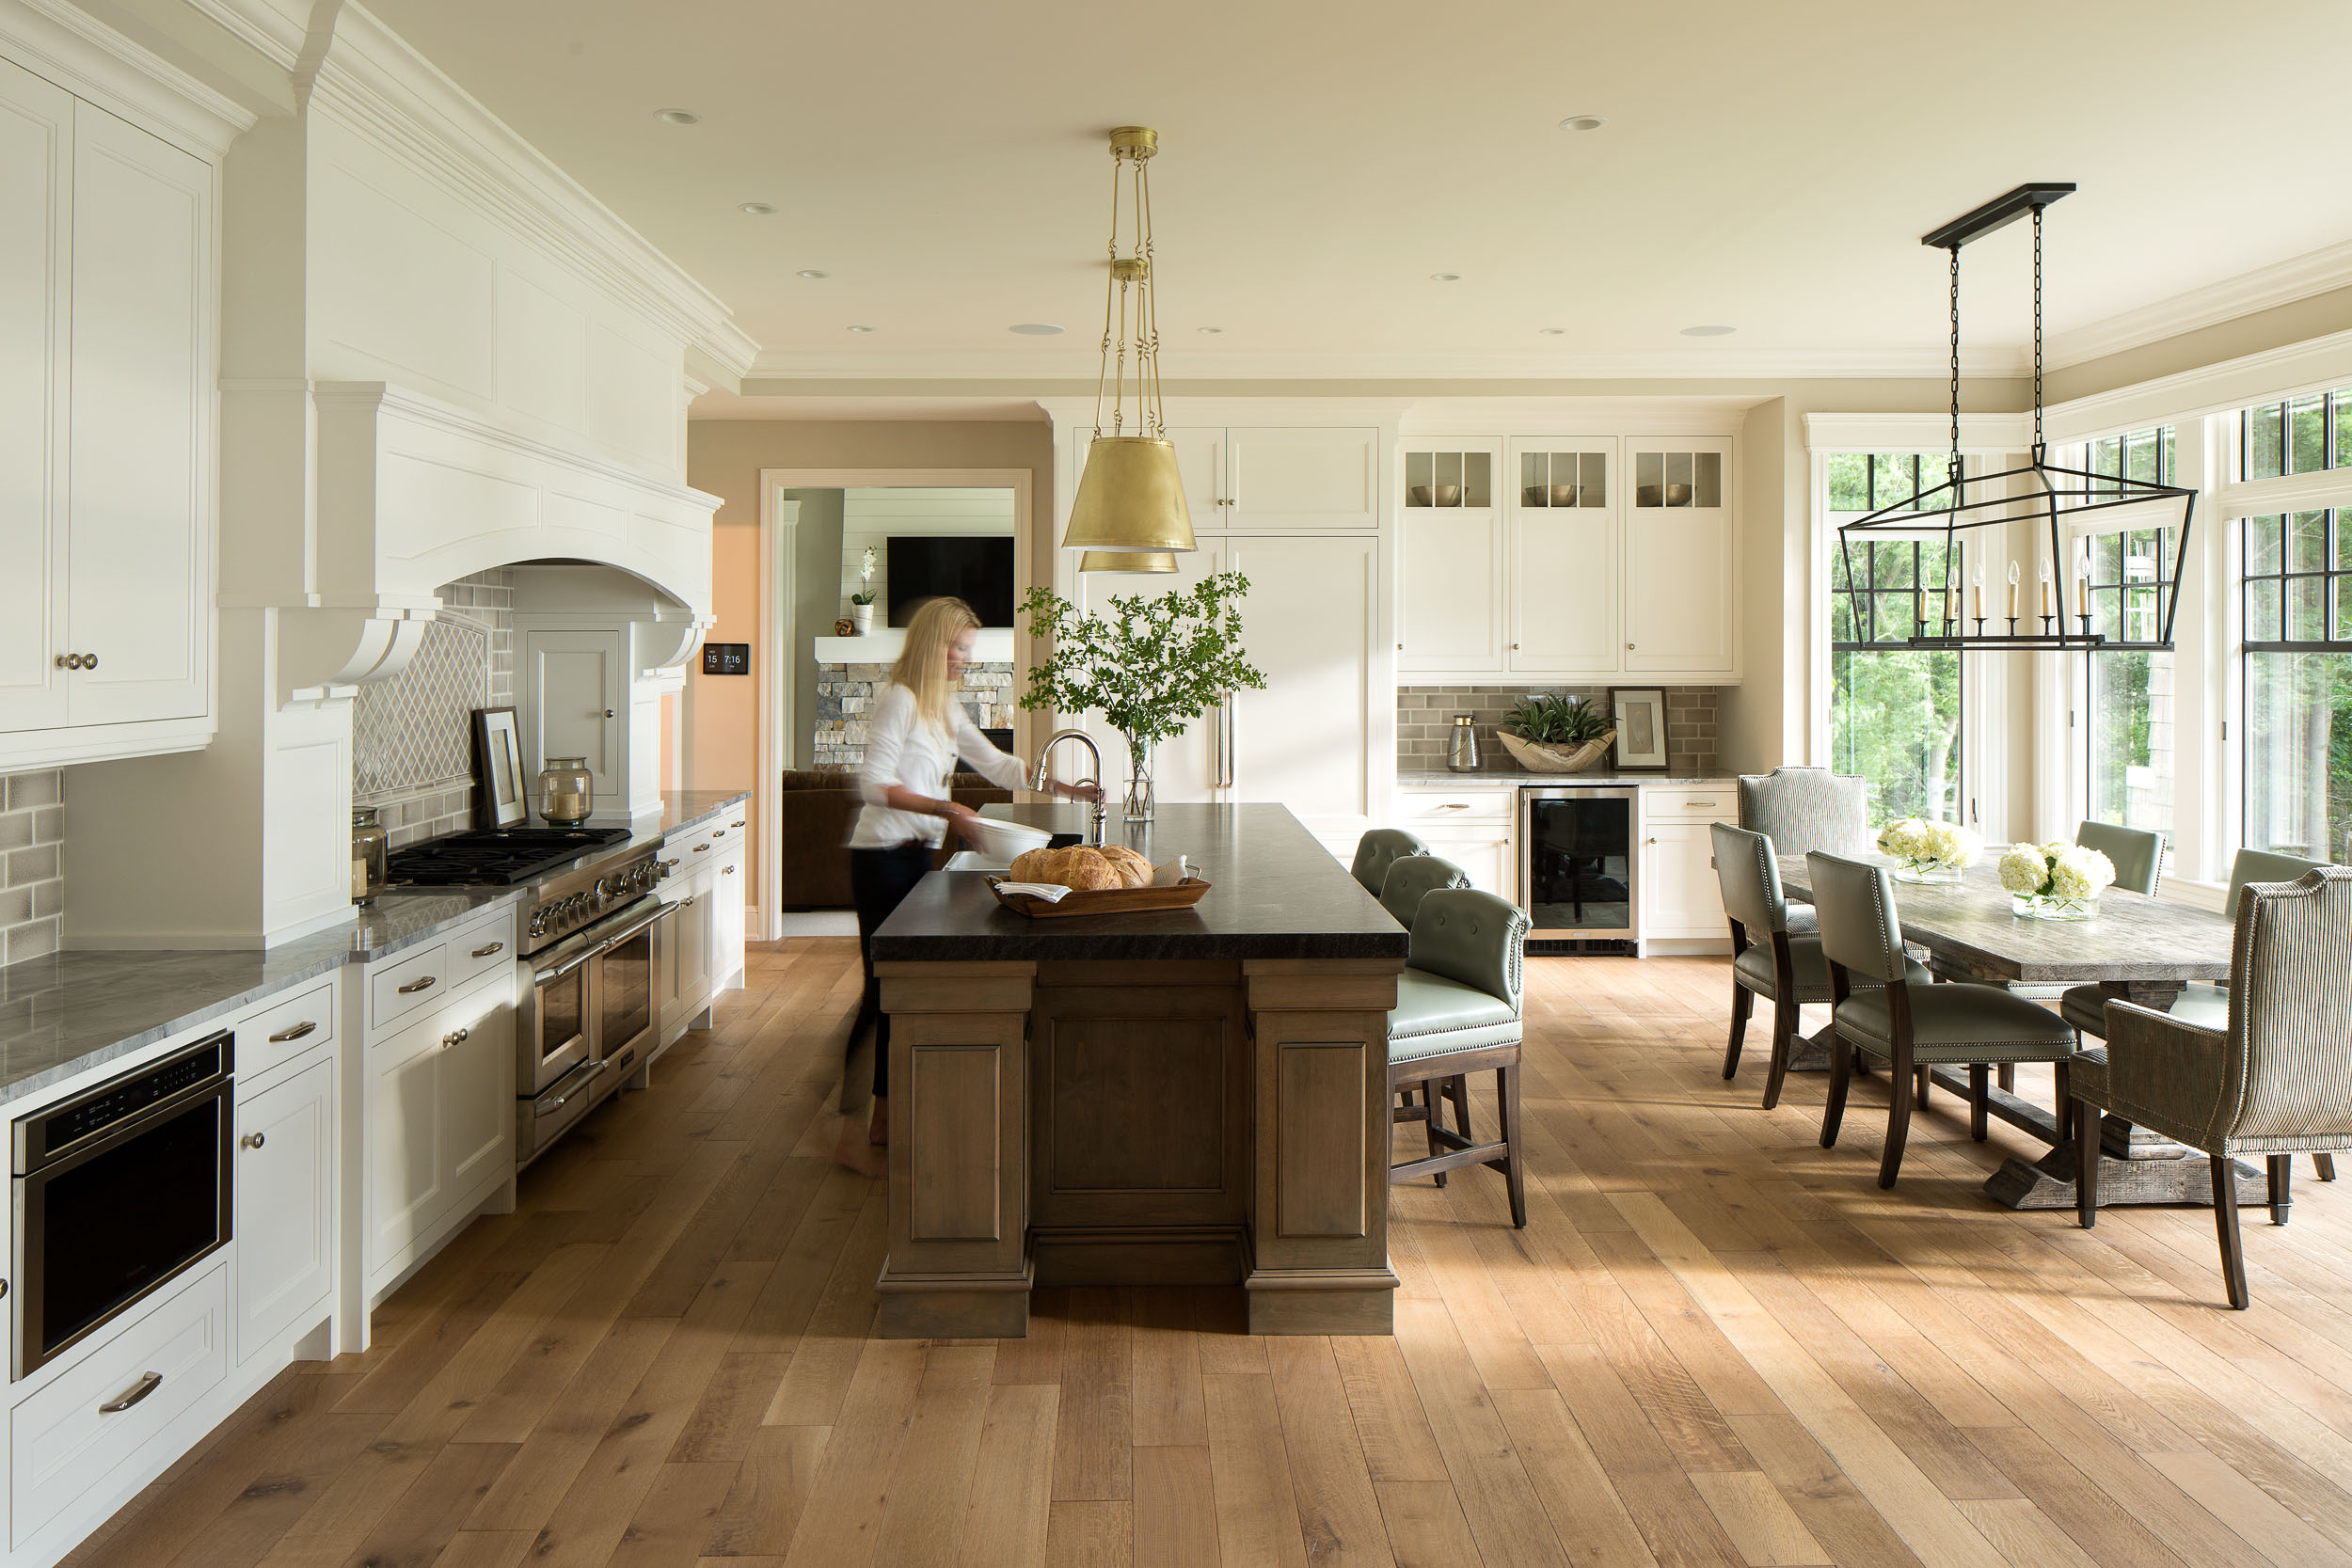 Lake Artisan Home Kitchen Image